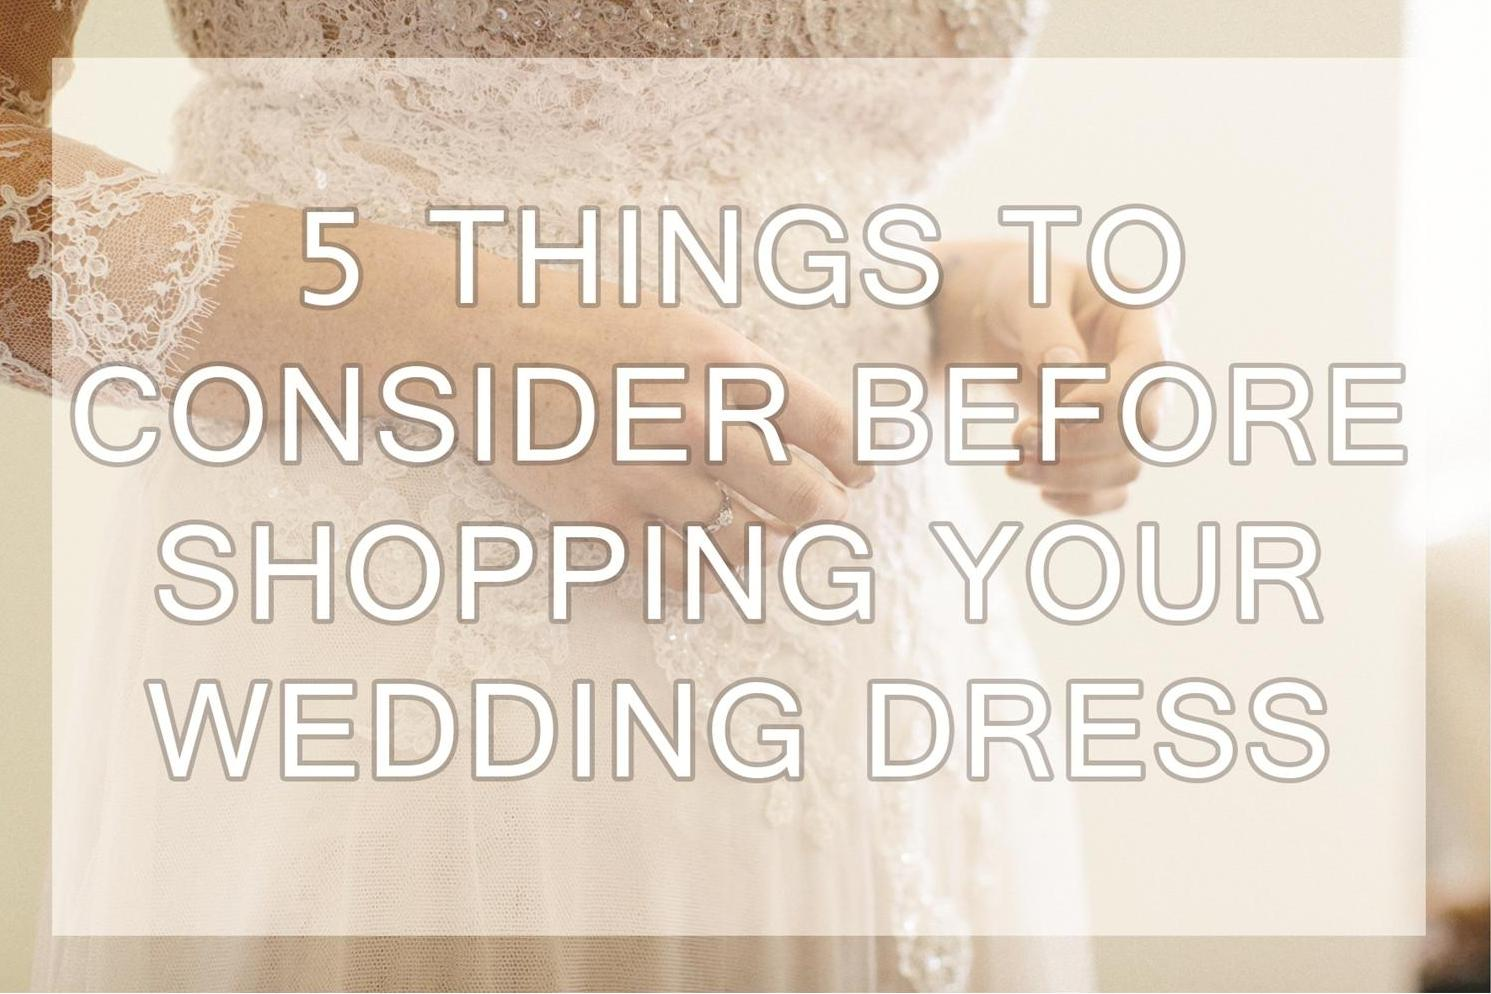 5 Things To Consider Before Shopping Your Wedding Dress